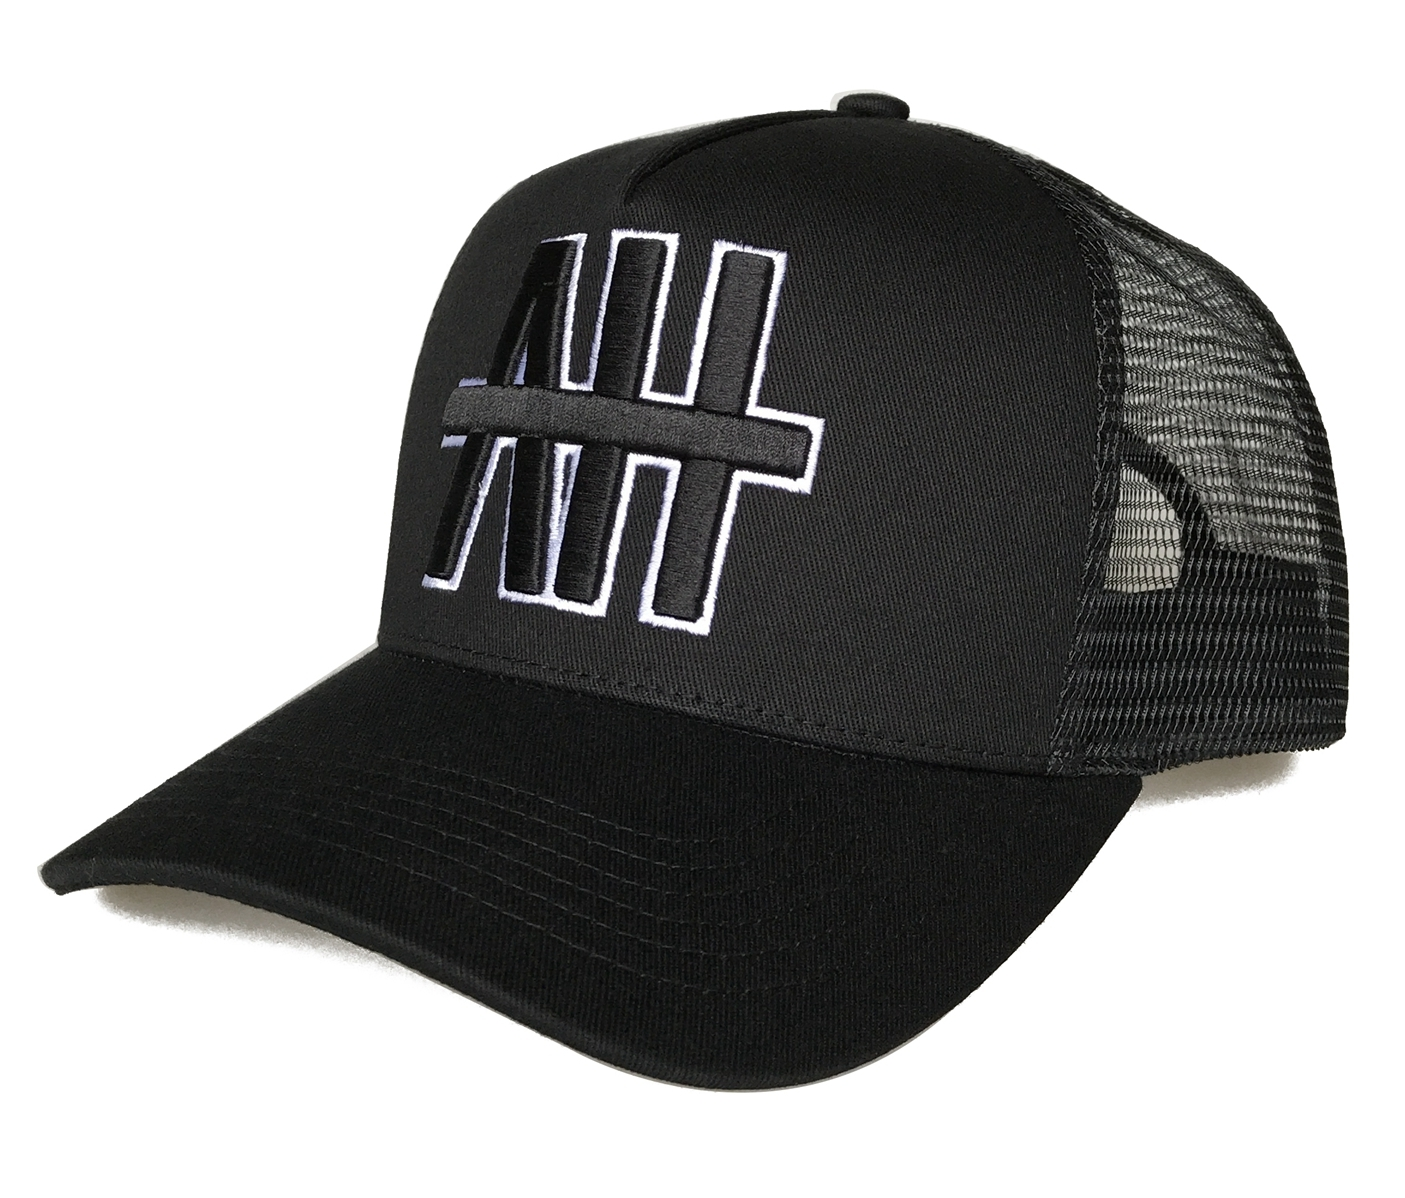 Trucker hat/Mesh hat - CMC 3085 (5 panel printing crown oran